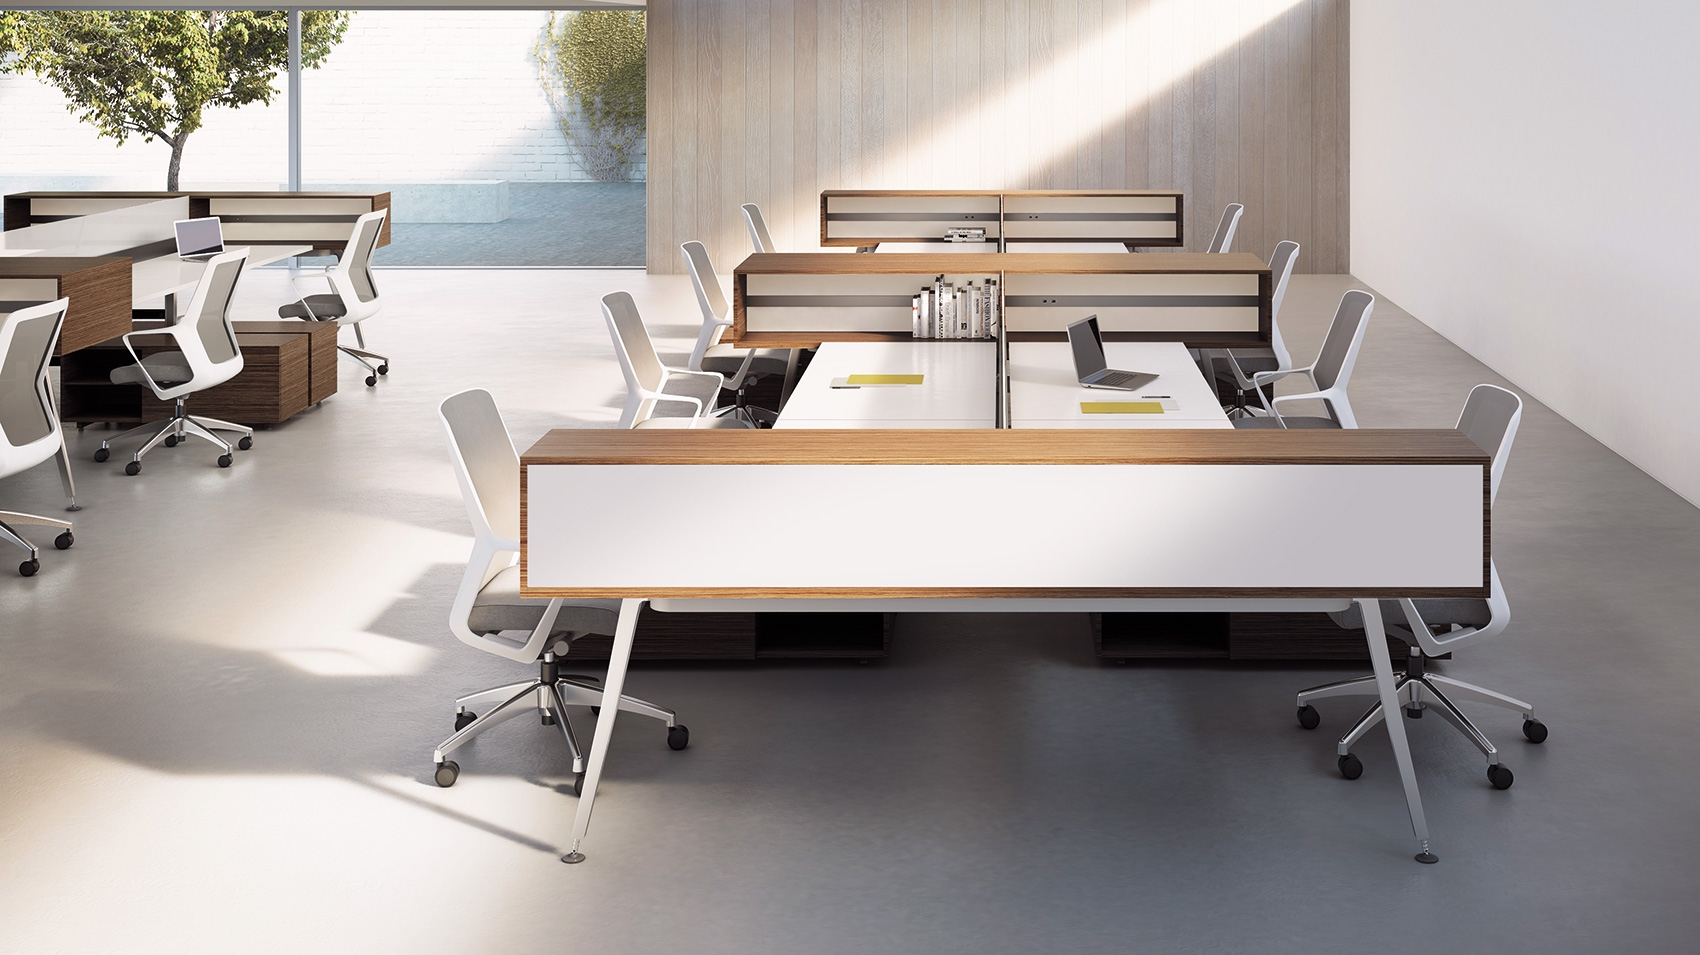 Ofs Office Furniture Property Prepossessing Eleven Workspace  Ofs Design Inspiration